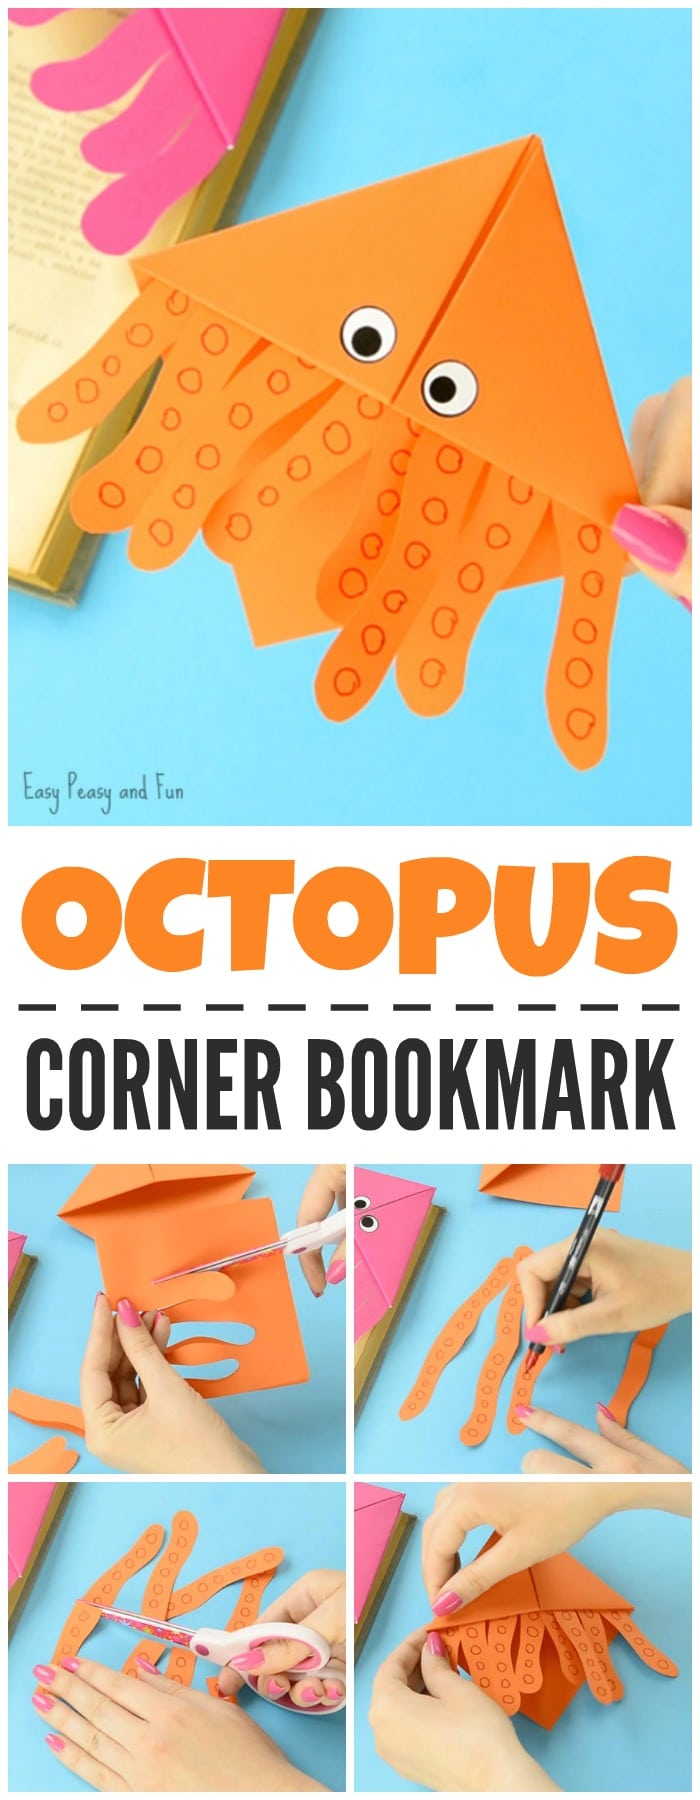 Octopus Corner Bookmarks Origami Crafts for Kids